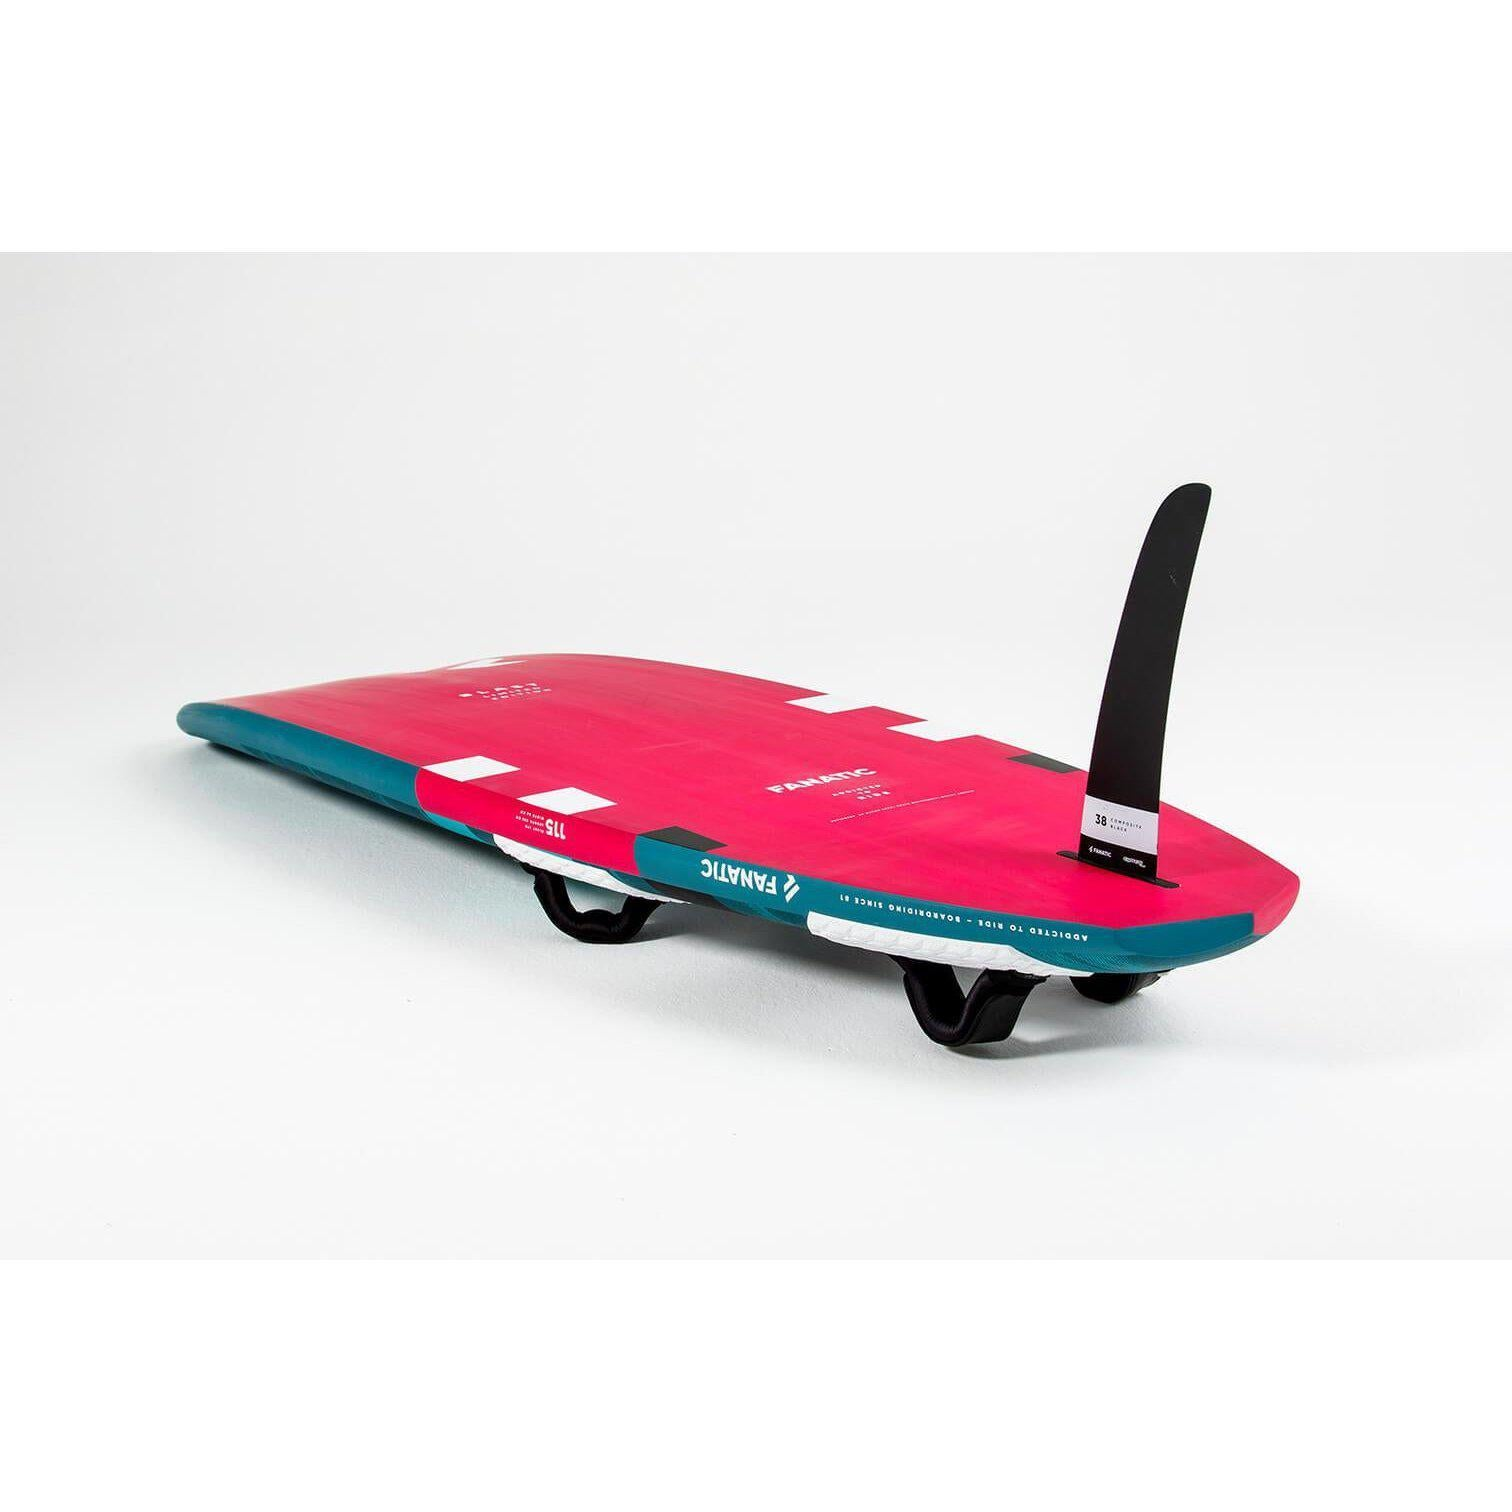 2020 Fanatic Blast LTD Windsurfing Board-Big Winds